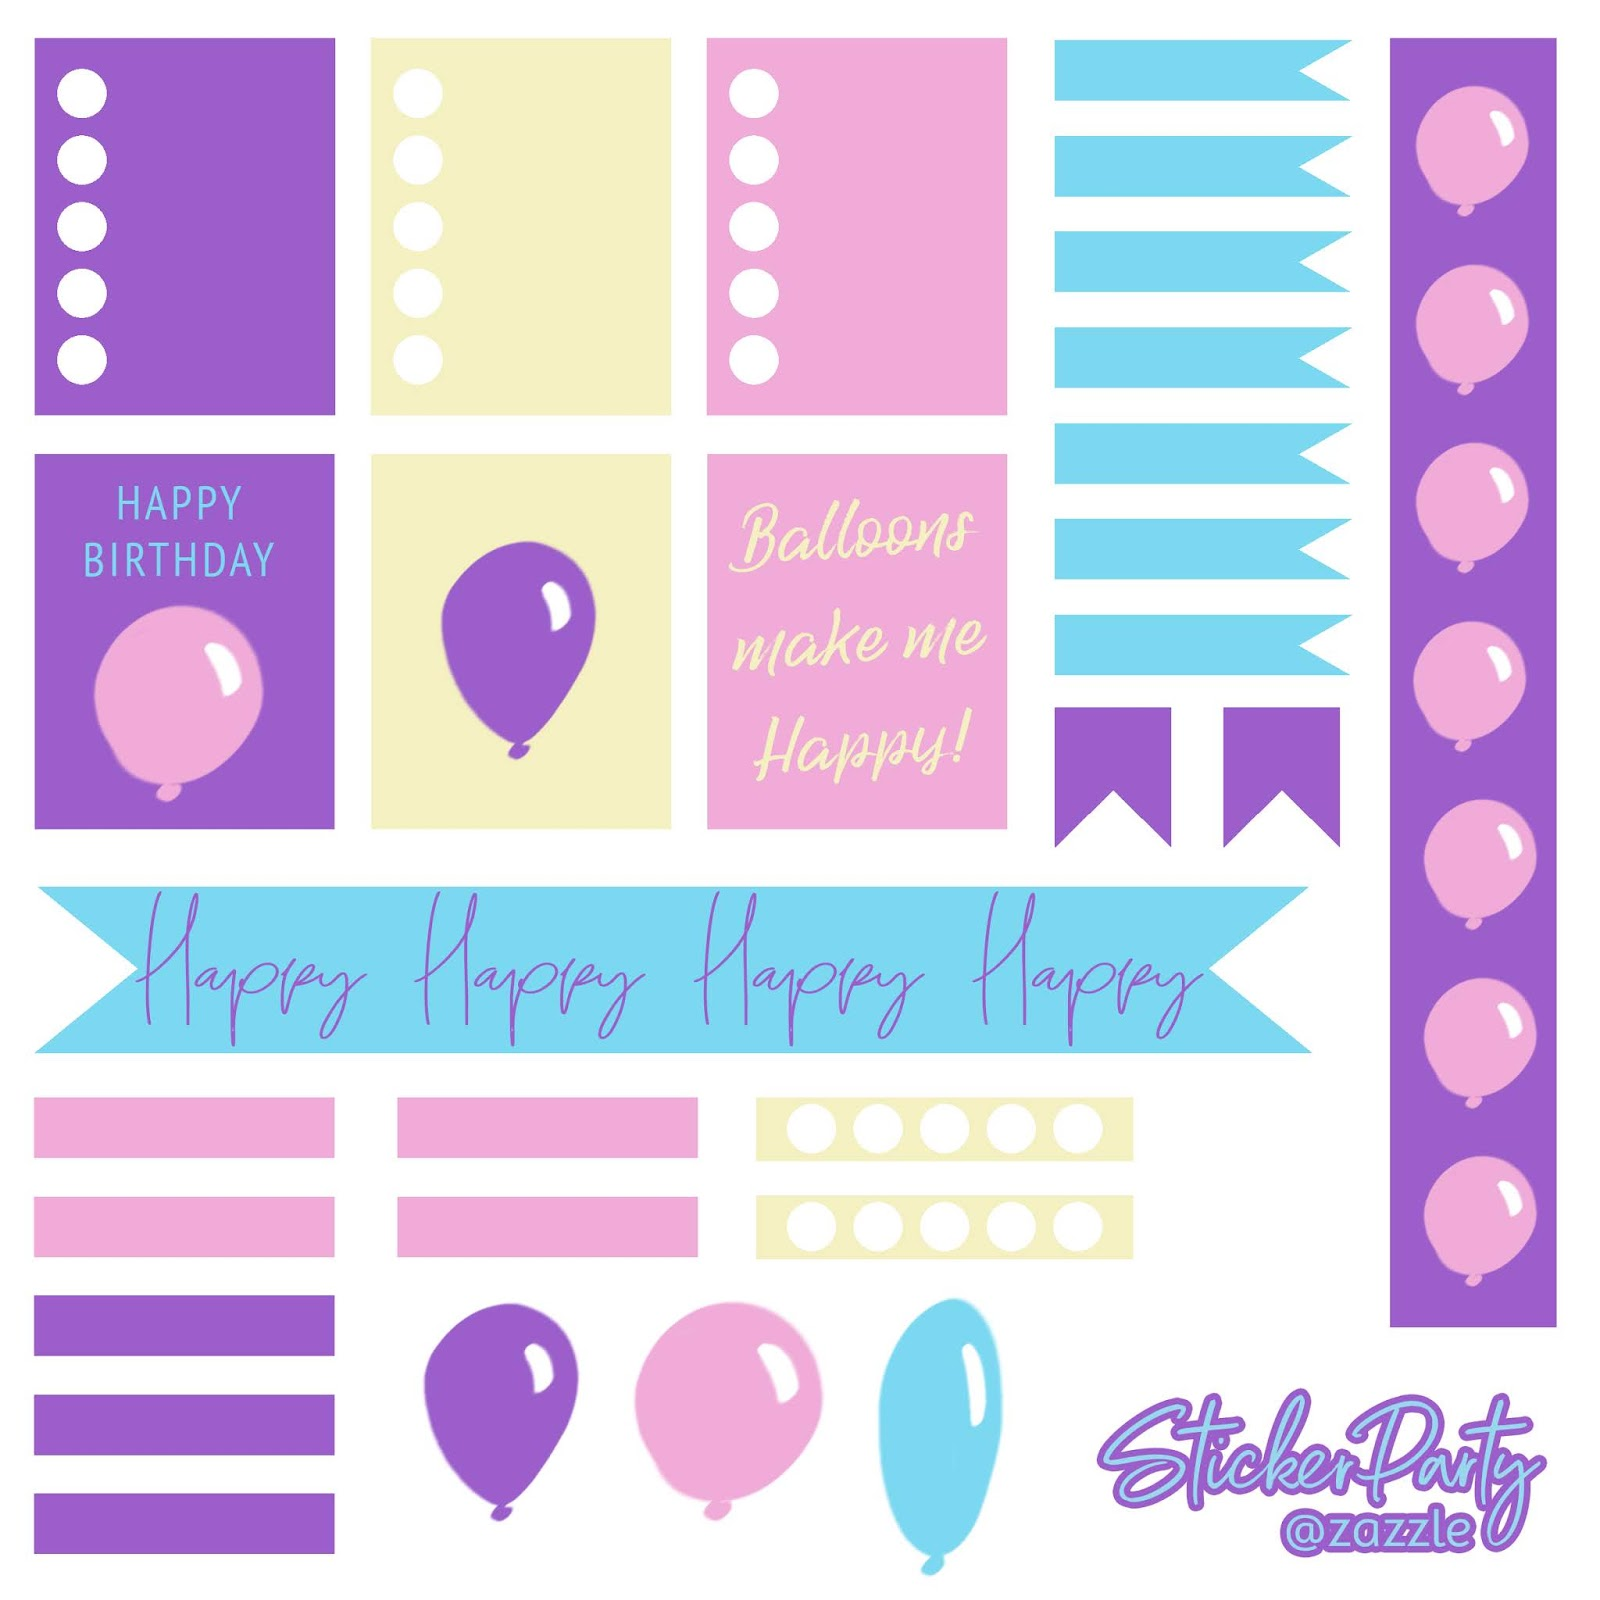 Free happy birthday party and balloons rainbow planner sticker sheet. Planner stickers fit ECLP (Erin Condren Life Planner) and Recollections planners. A digital download printable made to perfectly match this collection!